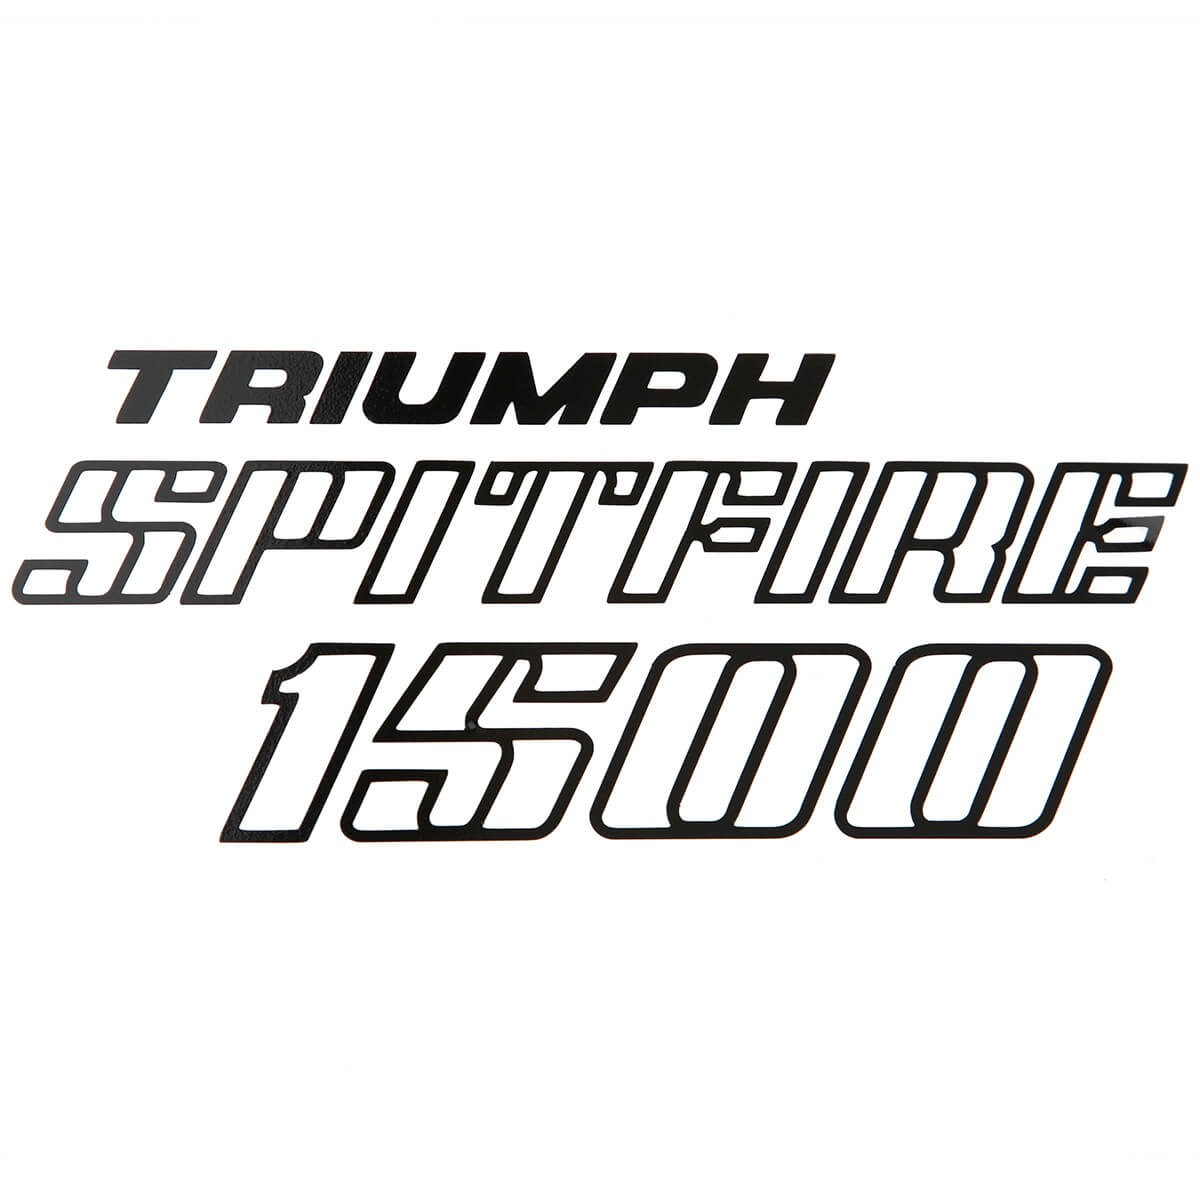 601 500 Trunk Lid Decal Spitfire